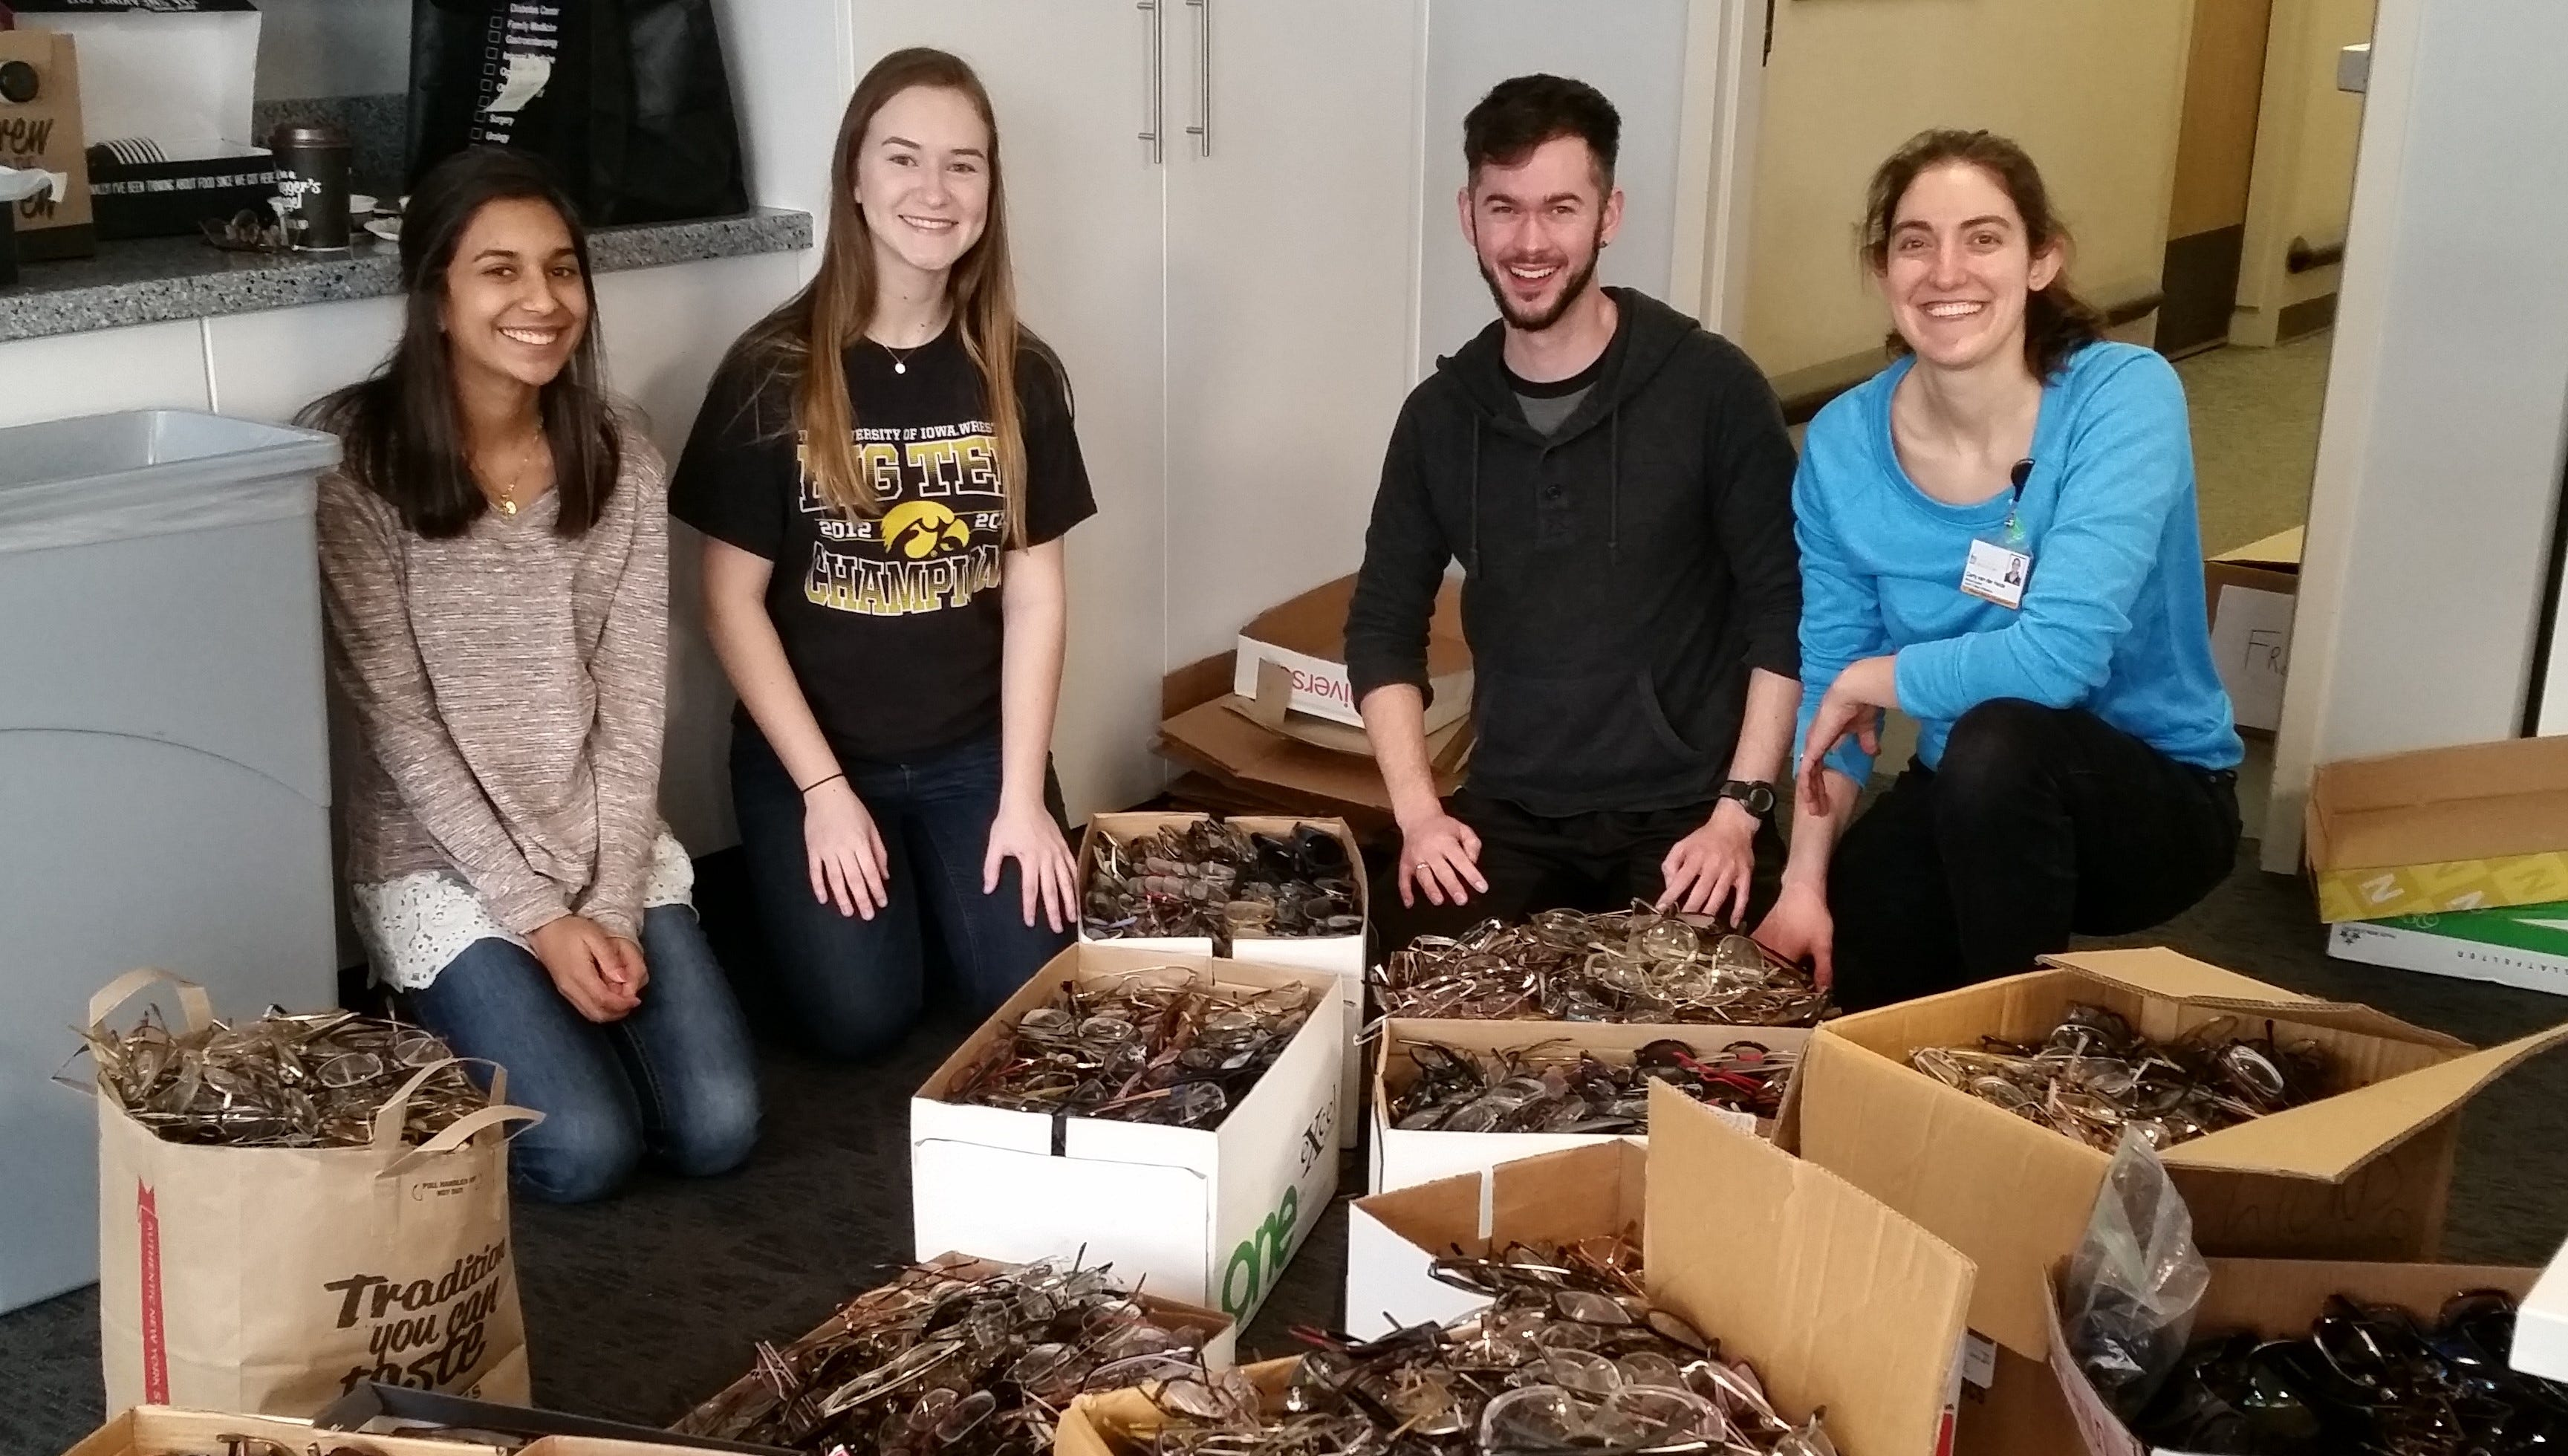 University of Iowa student volunteers (from left) Megan D'Mello, Klaudia Rejczak, Addison Woll and Carly Van Der Heide prepare to process boxes of donated glasses collected from individuals and Lions Club sources.  The glasses are cleaned, then prescriptions are read and logged into the ReSpectacle database, then matched with recipients and  shipped where needed in the U.S. and abroad.